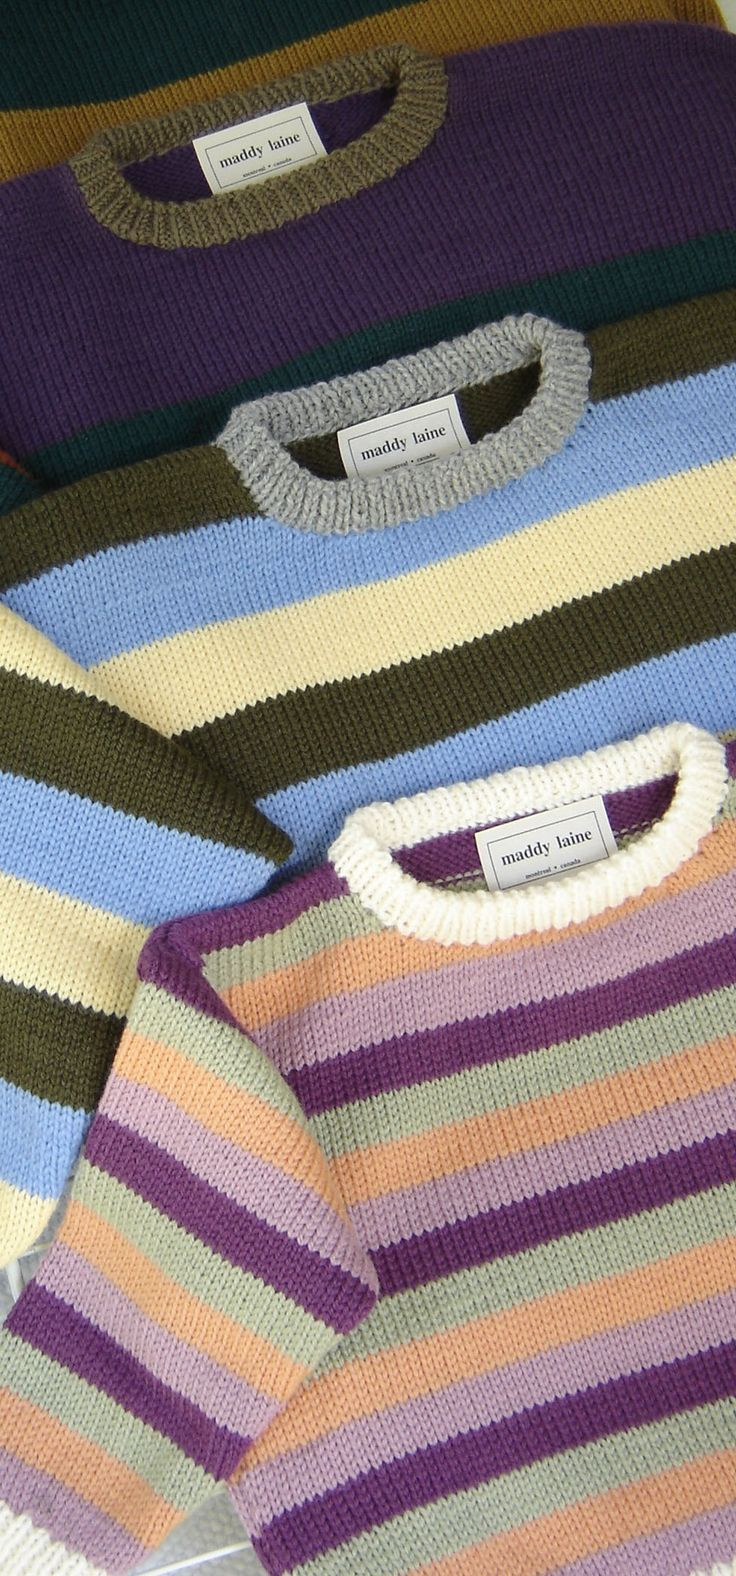 Sizes beginning at 6 years are in this family-sized knitting pattern for a striped drop-shoulder pullover.